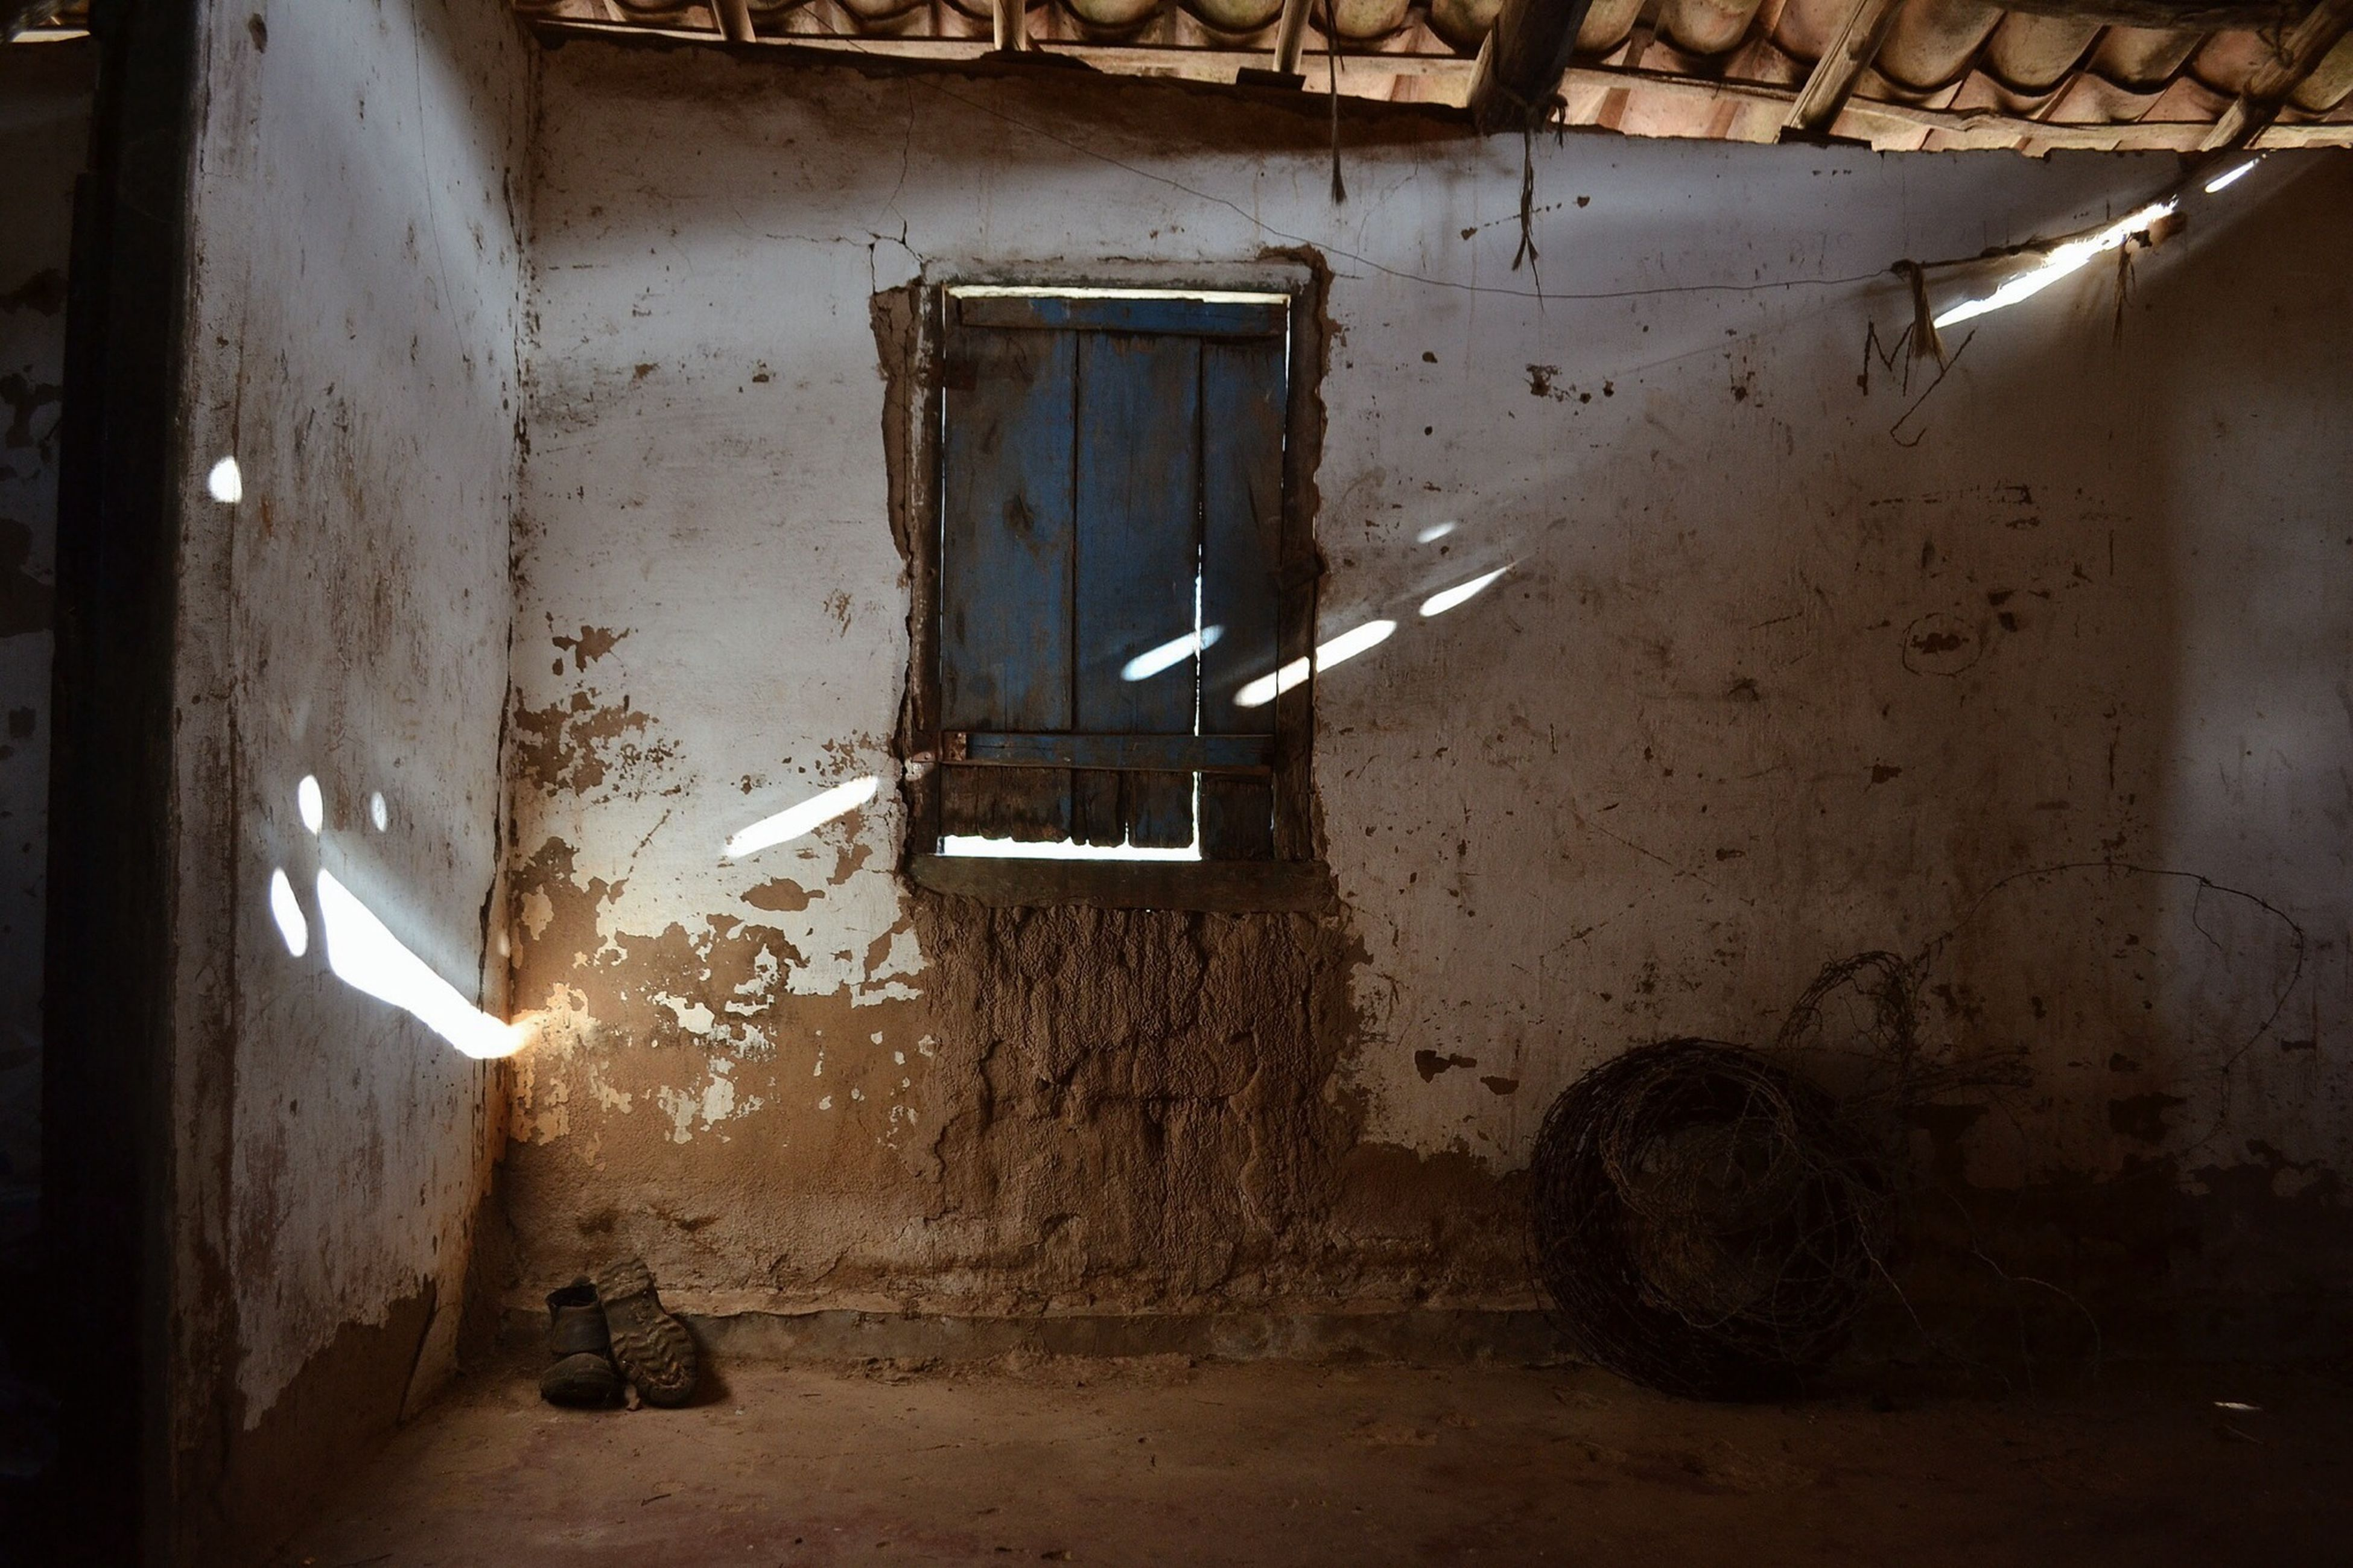 architecture, built structure, building exterior, house, abandoned, window, damaged, obsolete, residential structure, old, wall - building feature, door, deterioration, residential building, wall, run-down, building, sunlight, indoors, day